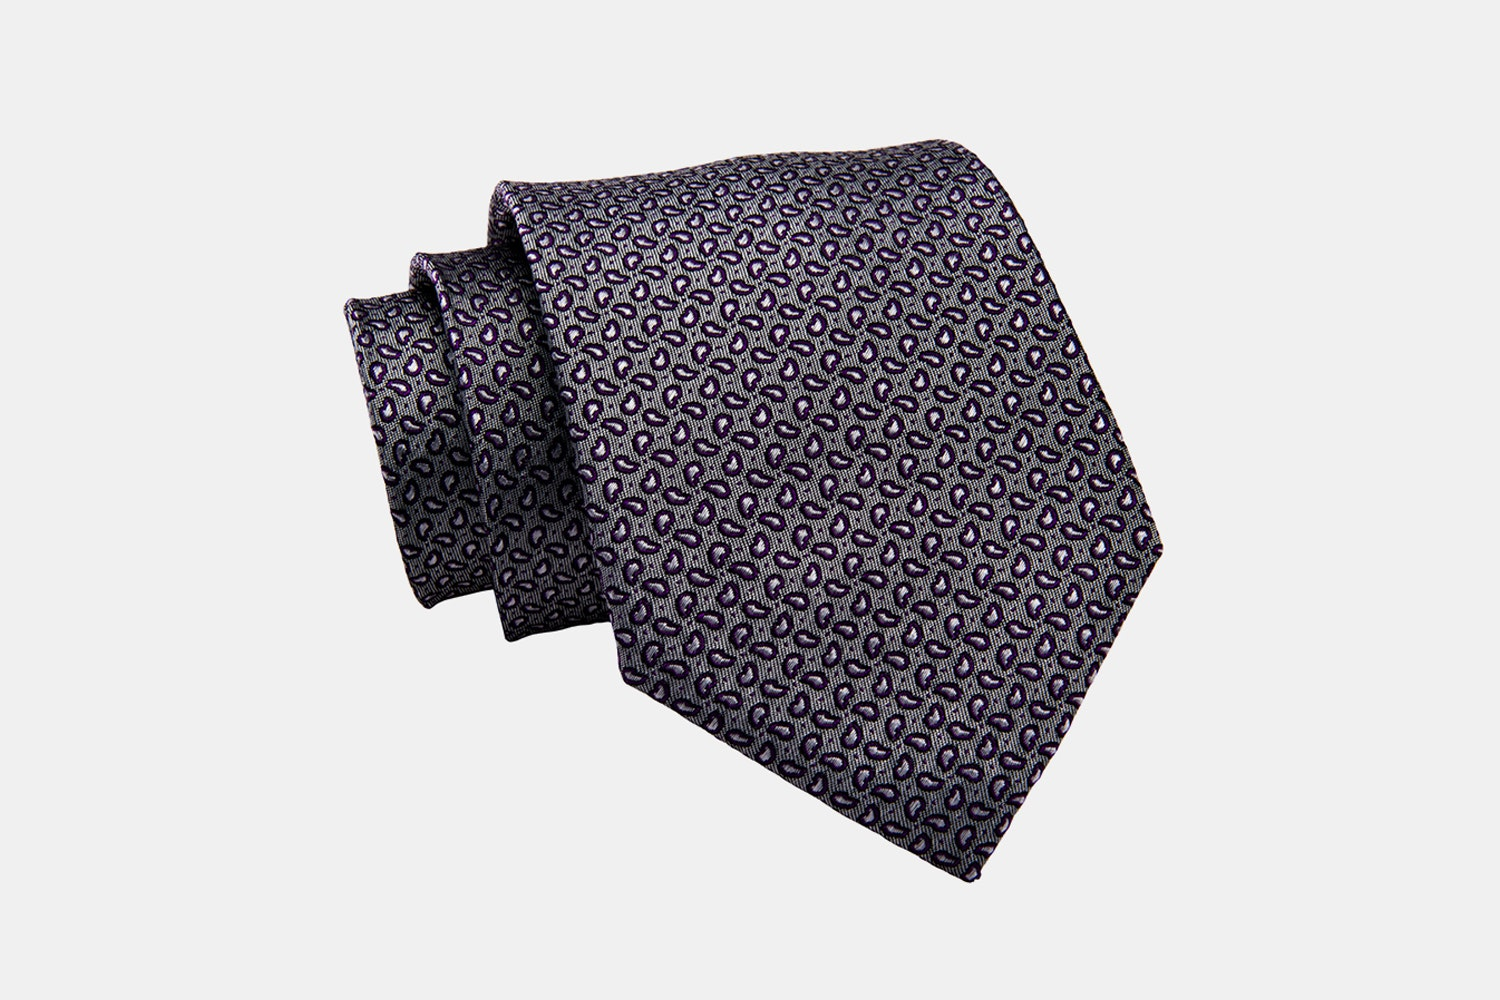 Brentwood Abstract Silk Tie, Grey / Burgundy (-$15)